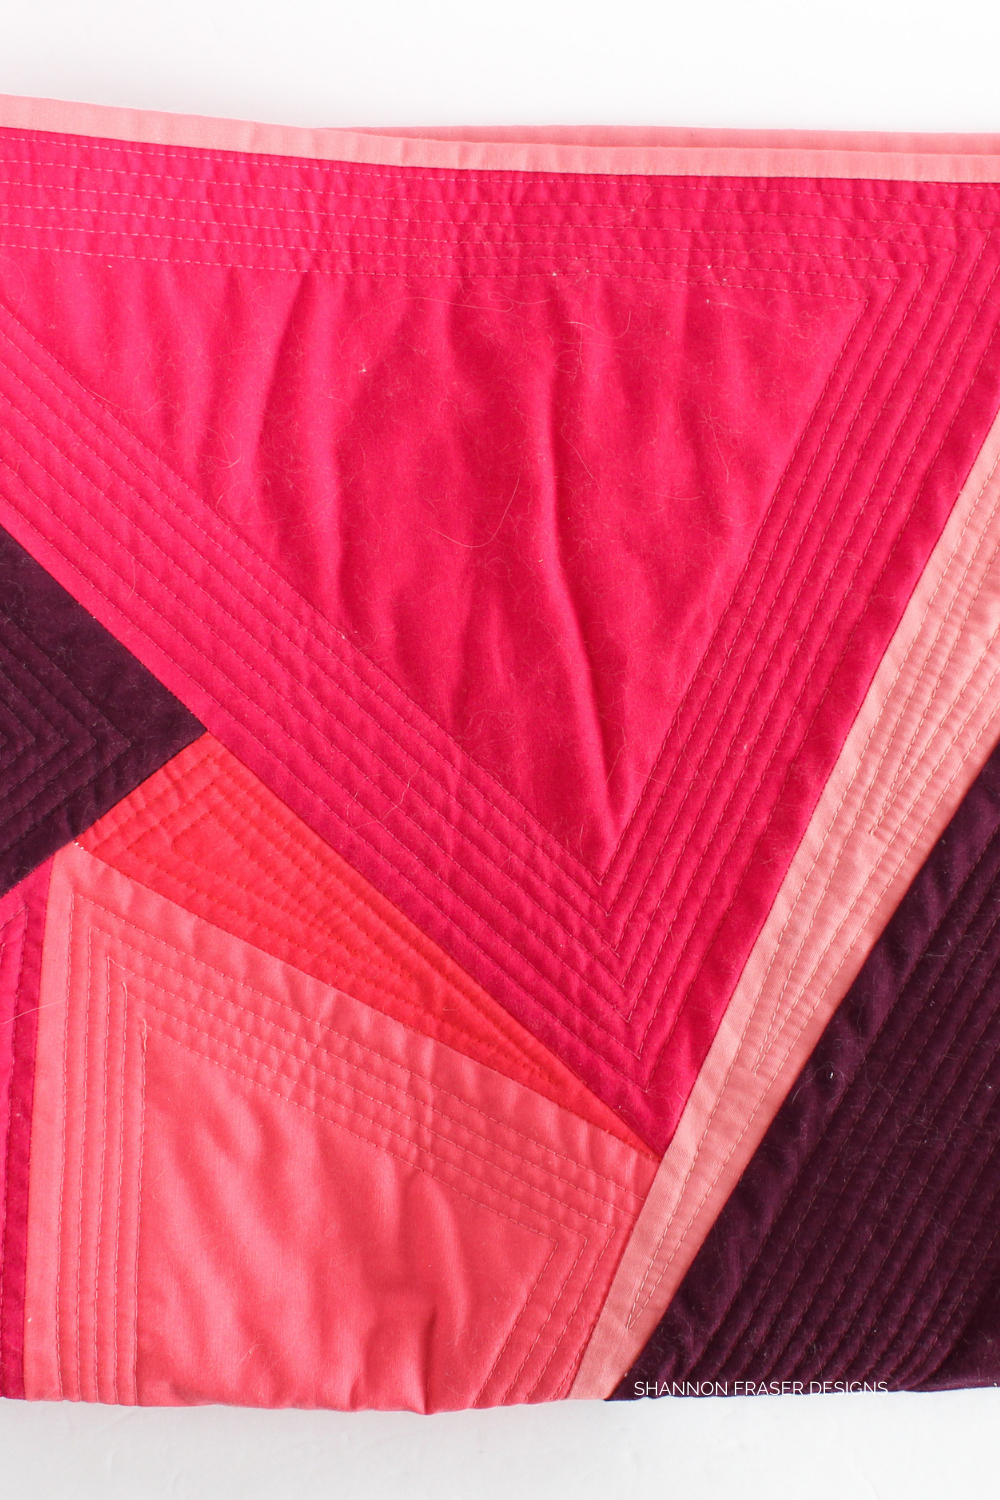 Machine quilting details using 50wt aurifil thread to echo each triangle featured in the One Hundred and Eighty Degree quilted wall hanging. A creative challenge with the MtlMQG inspired by the work of artist Guido Molinari | quilt and design by Shannon Fraser Designs #quilt #quilting #machinequilted